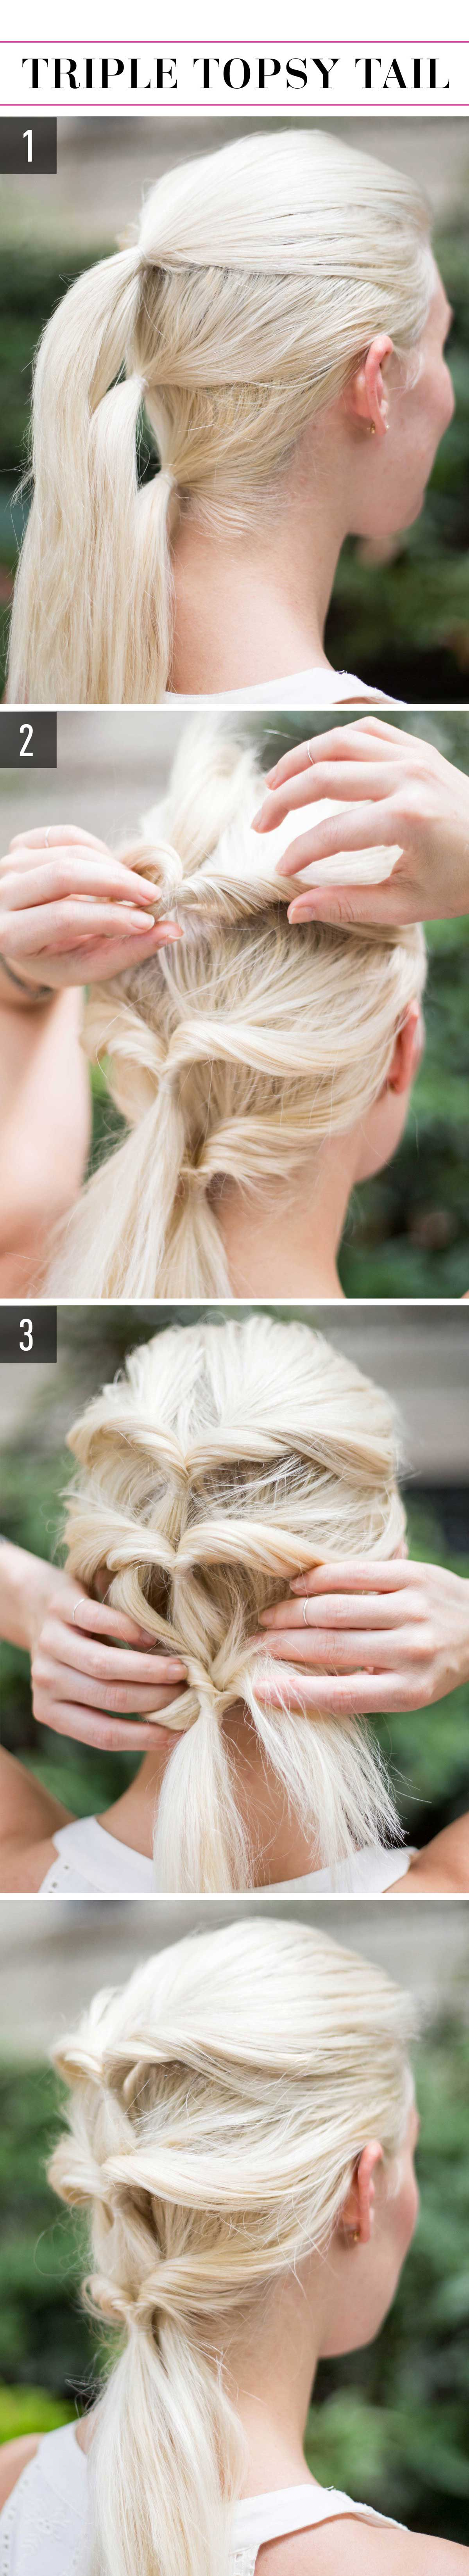 supereasy hairstyles for lazy girls who canut even third